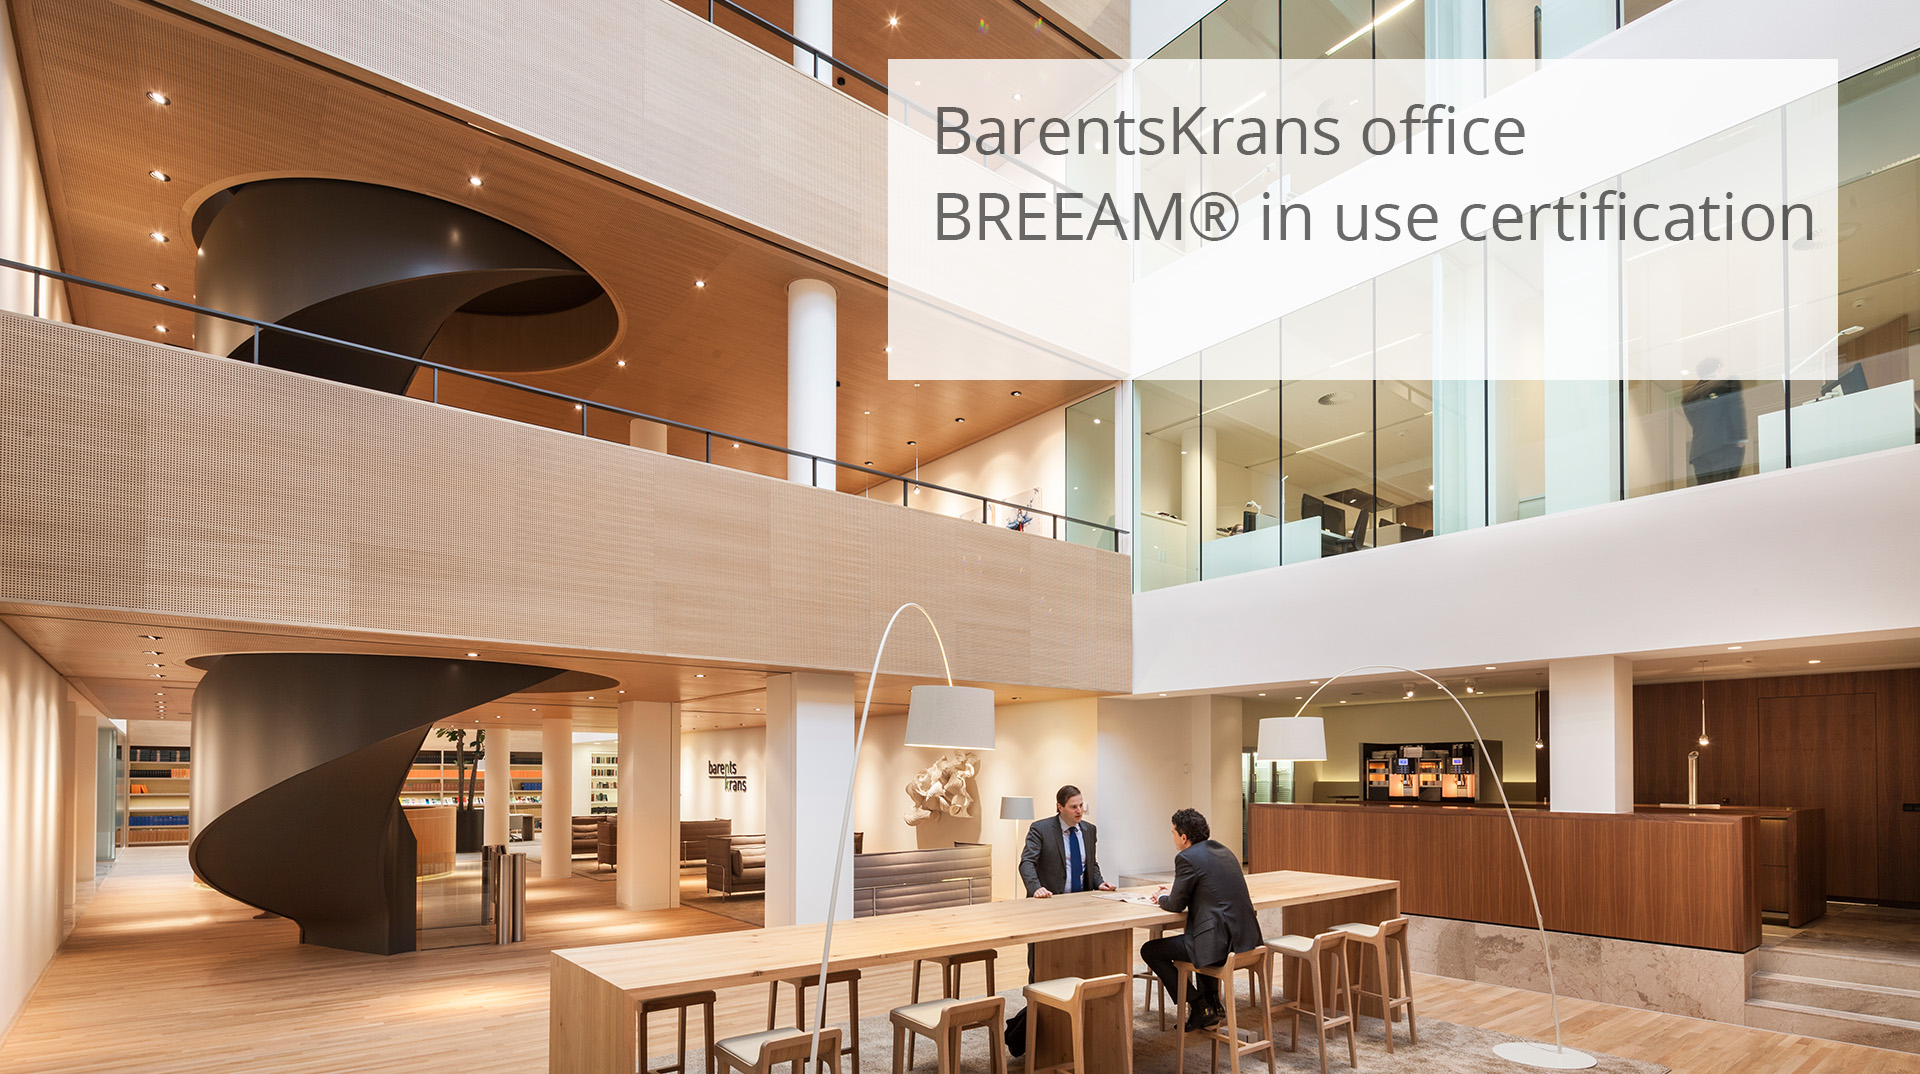 HofmanDujardin | BREEAM in use BarentsKrans